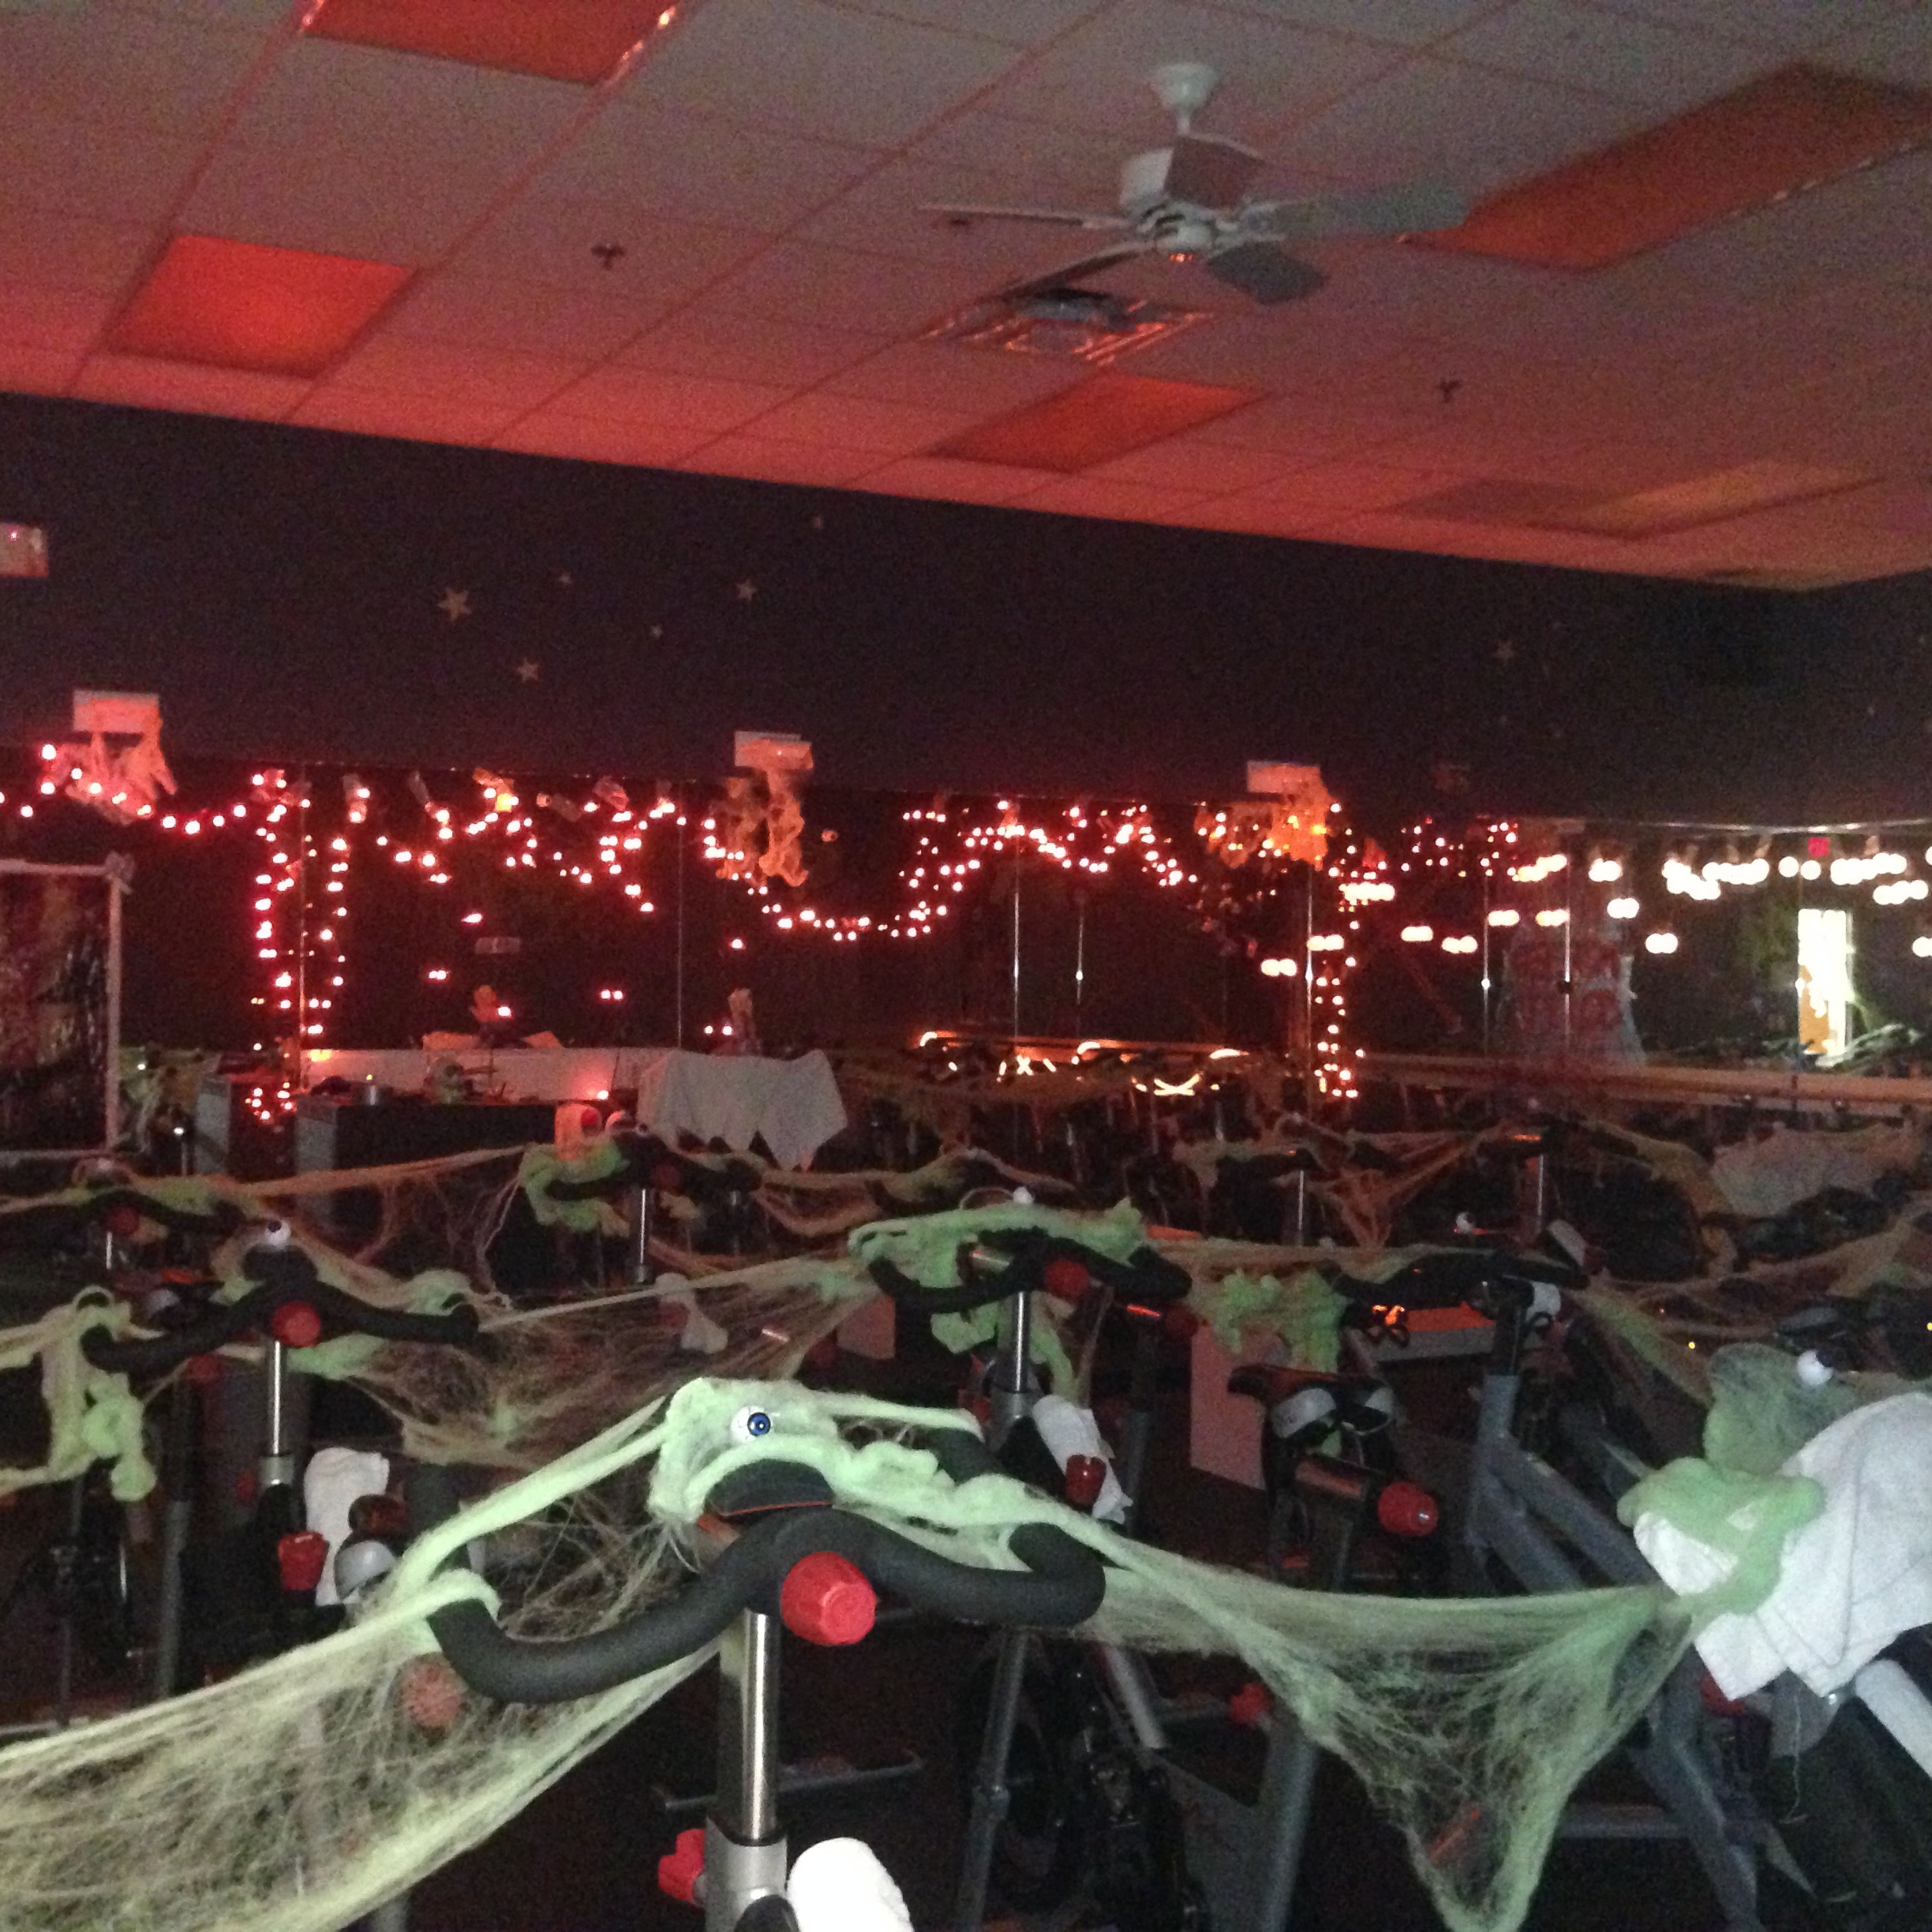 Halloween decorations Sachs Rec Center Deefield IL Carol King- took 5 hrs to set up